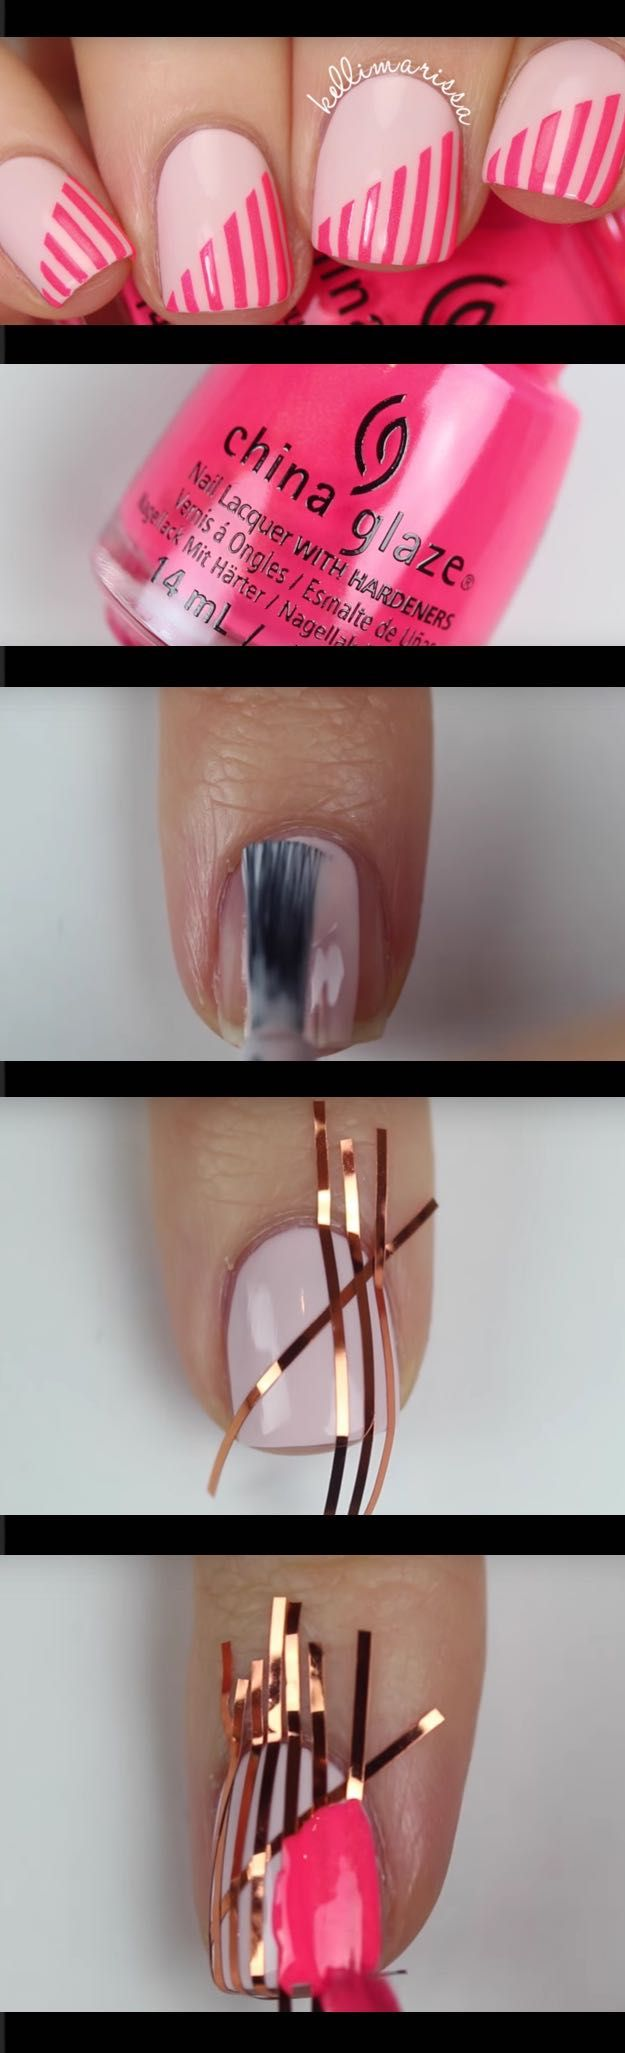 41 Super Easy Nail Art Ideas For Beginners Diy Nails Pinterest